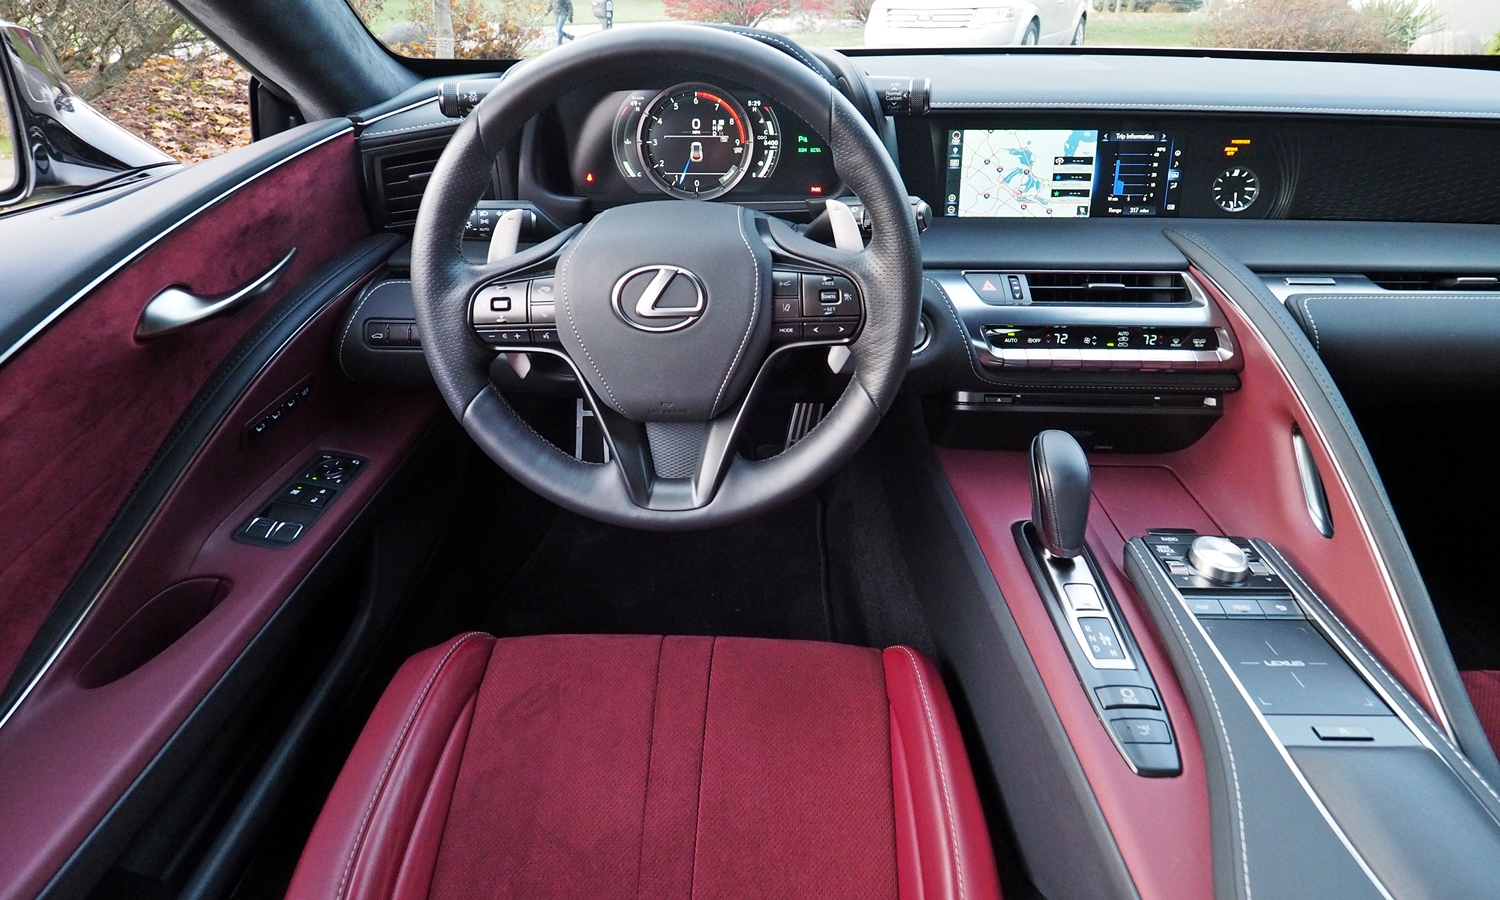 Lexus LC Photos: Lexus LC 500 instrument panel